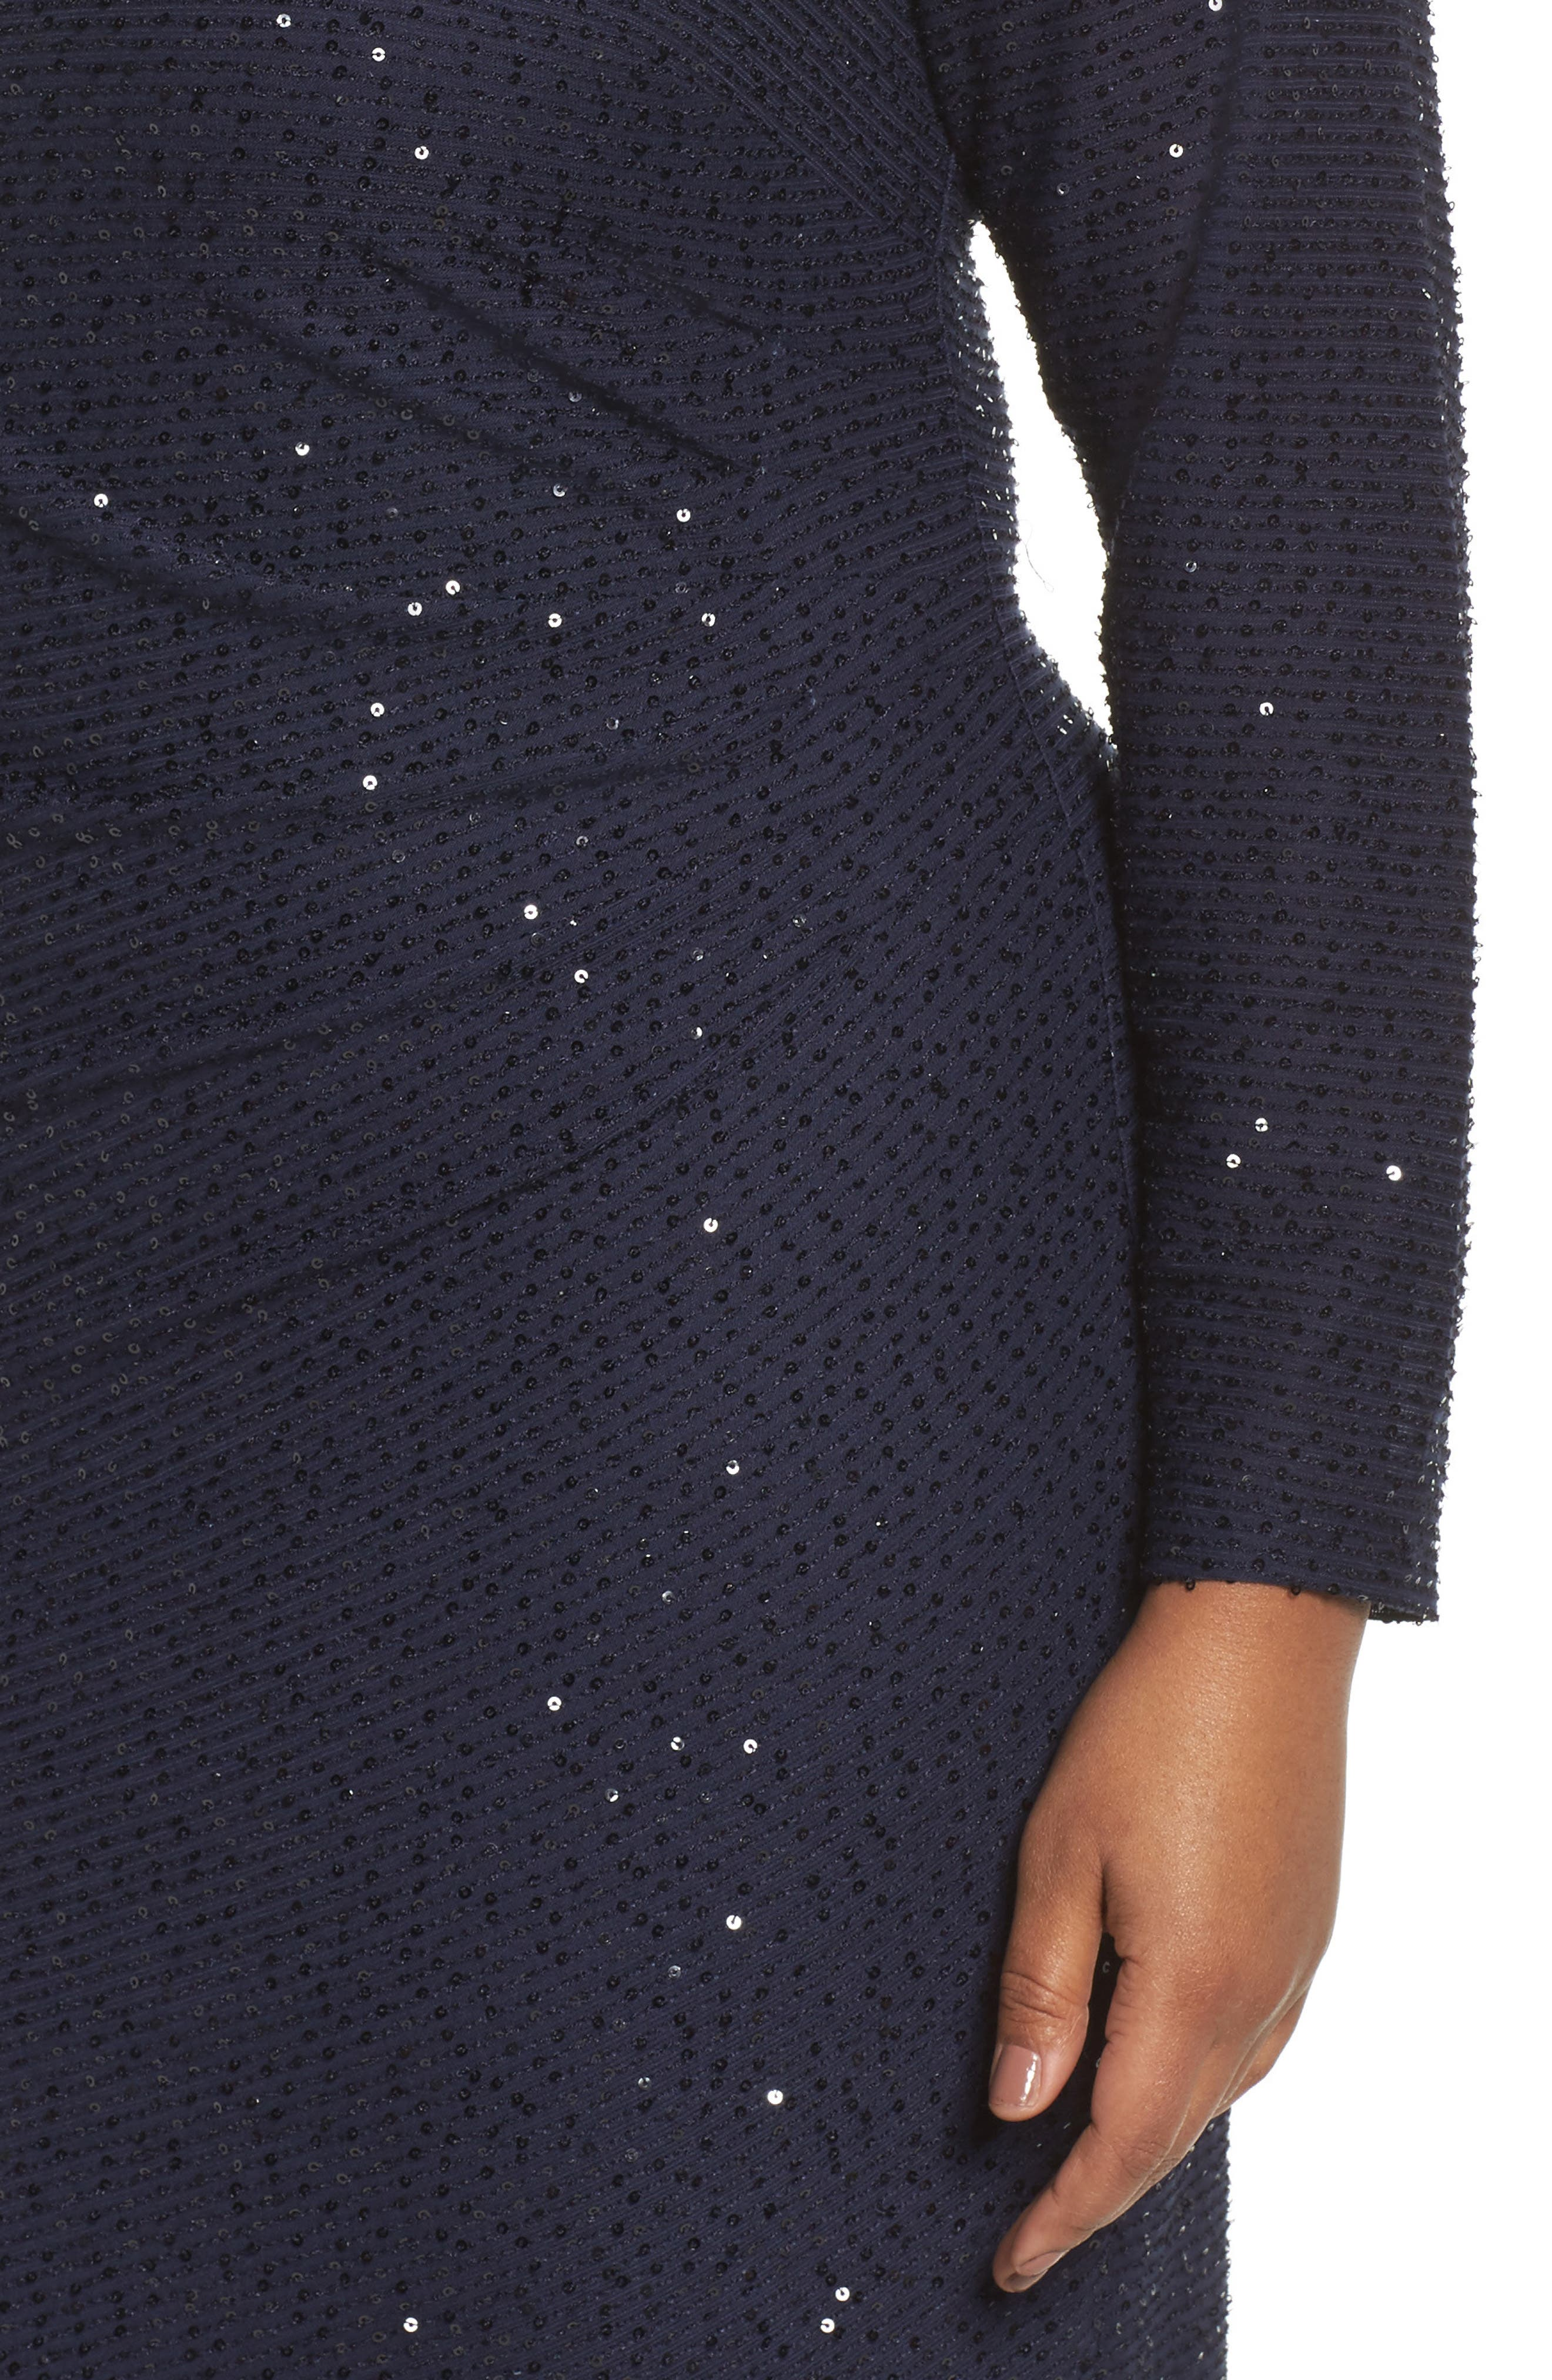 Sequin Knit Long Sleeve Dress,                             Alternate thumbnail 4, color,                             410